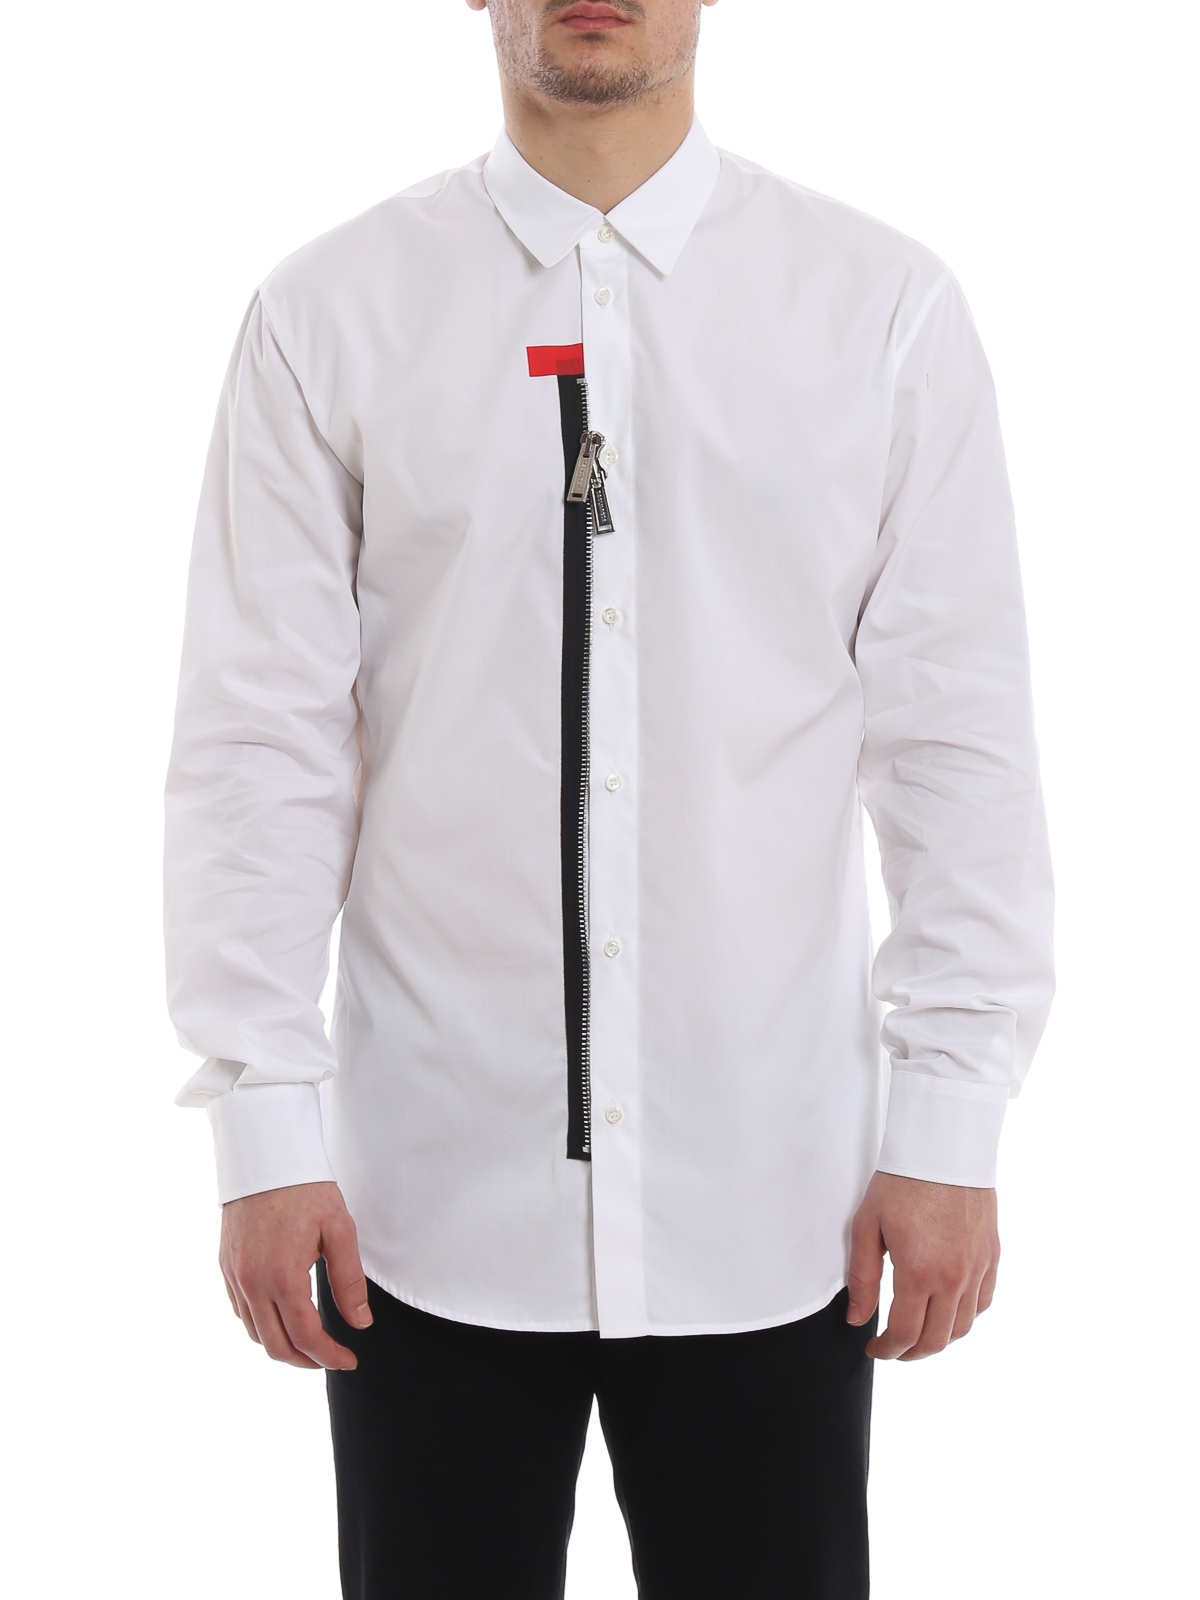 a1858627d1f2be Dsquared2 - Zip detail white cotton shirt - shirts - S74DM0195S36275100